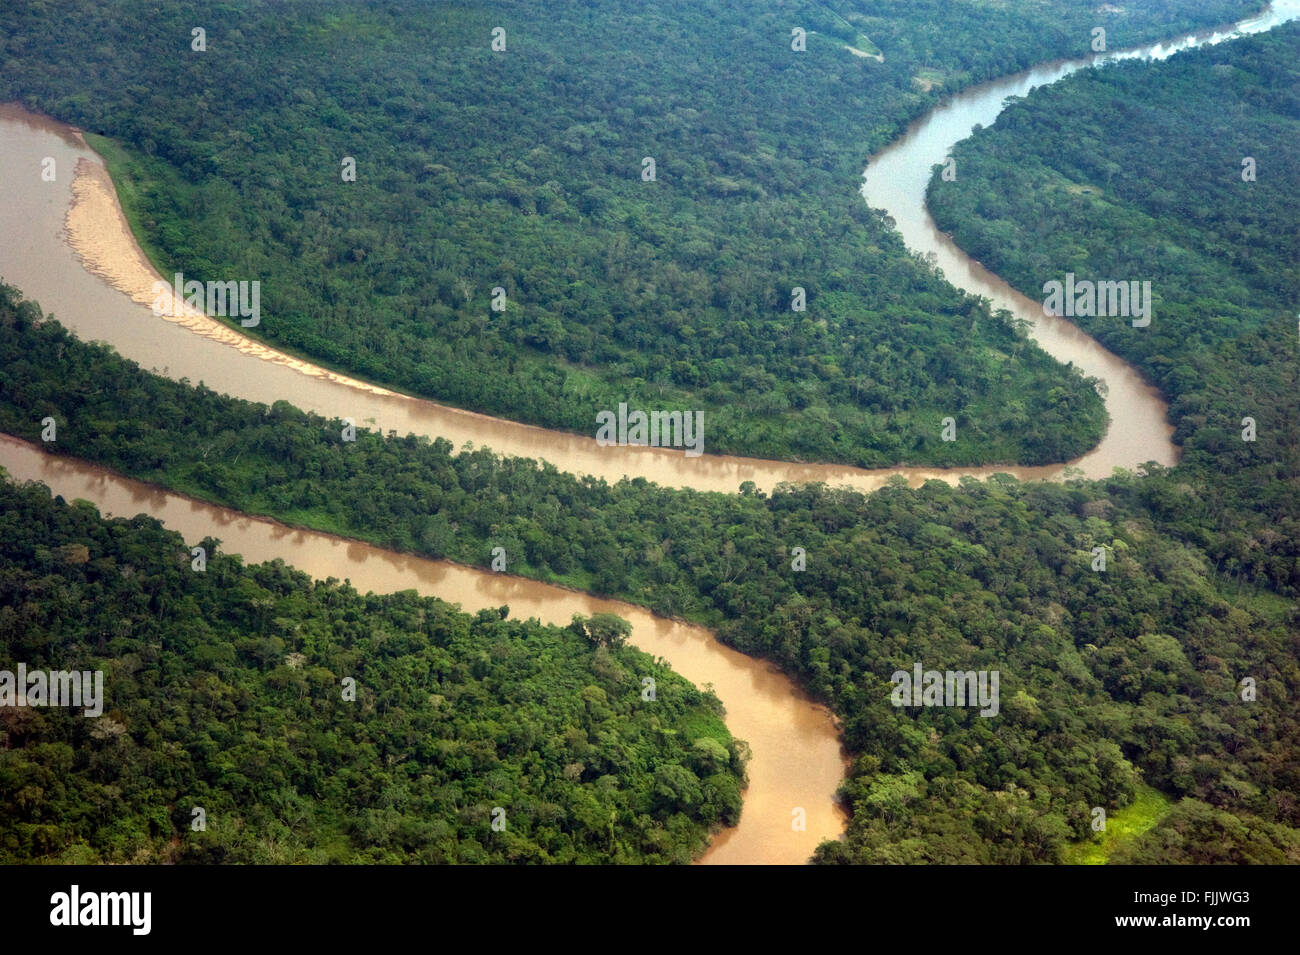 Aerial view of the Amazon River in Ecuador - Stock Image